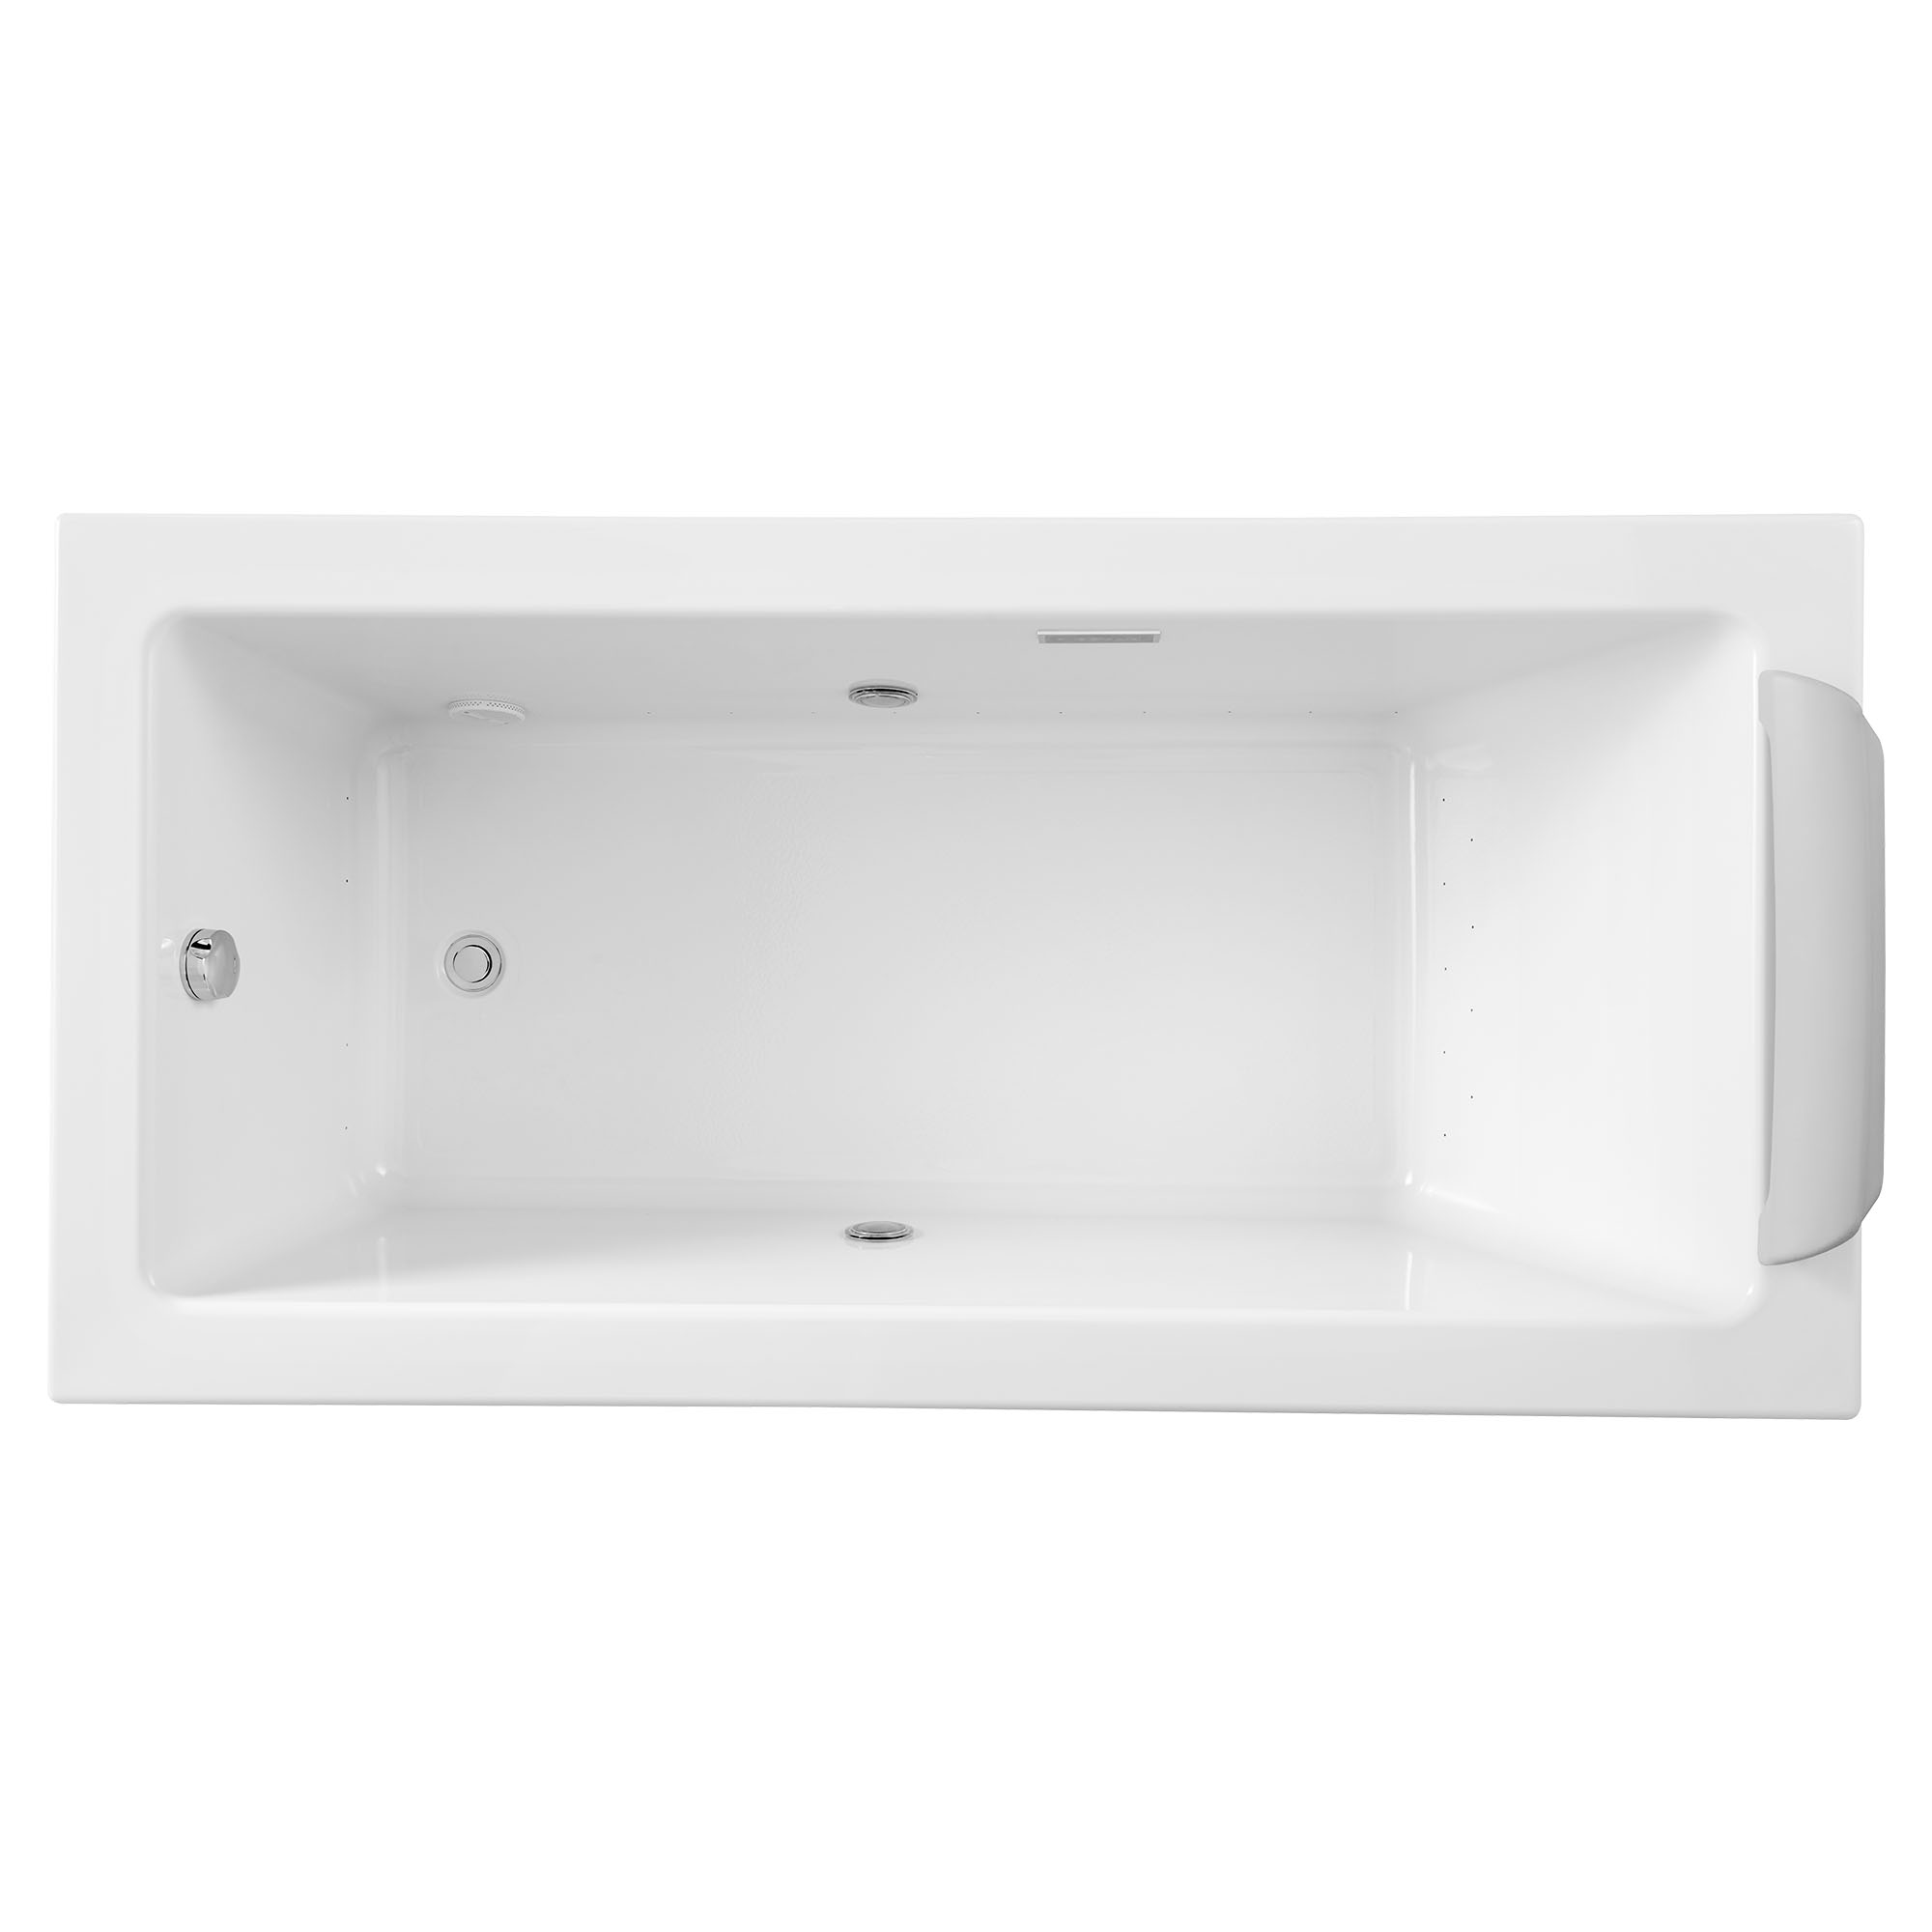 DXV Aqua Moment Drop-in Airbath with Waterfall